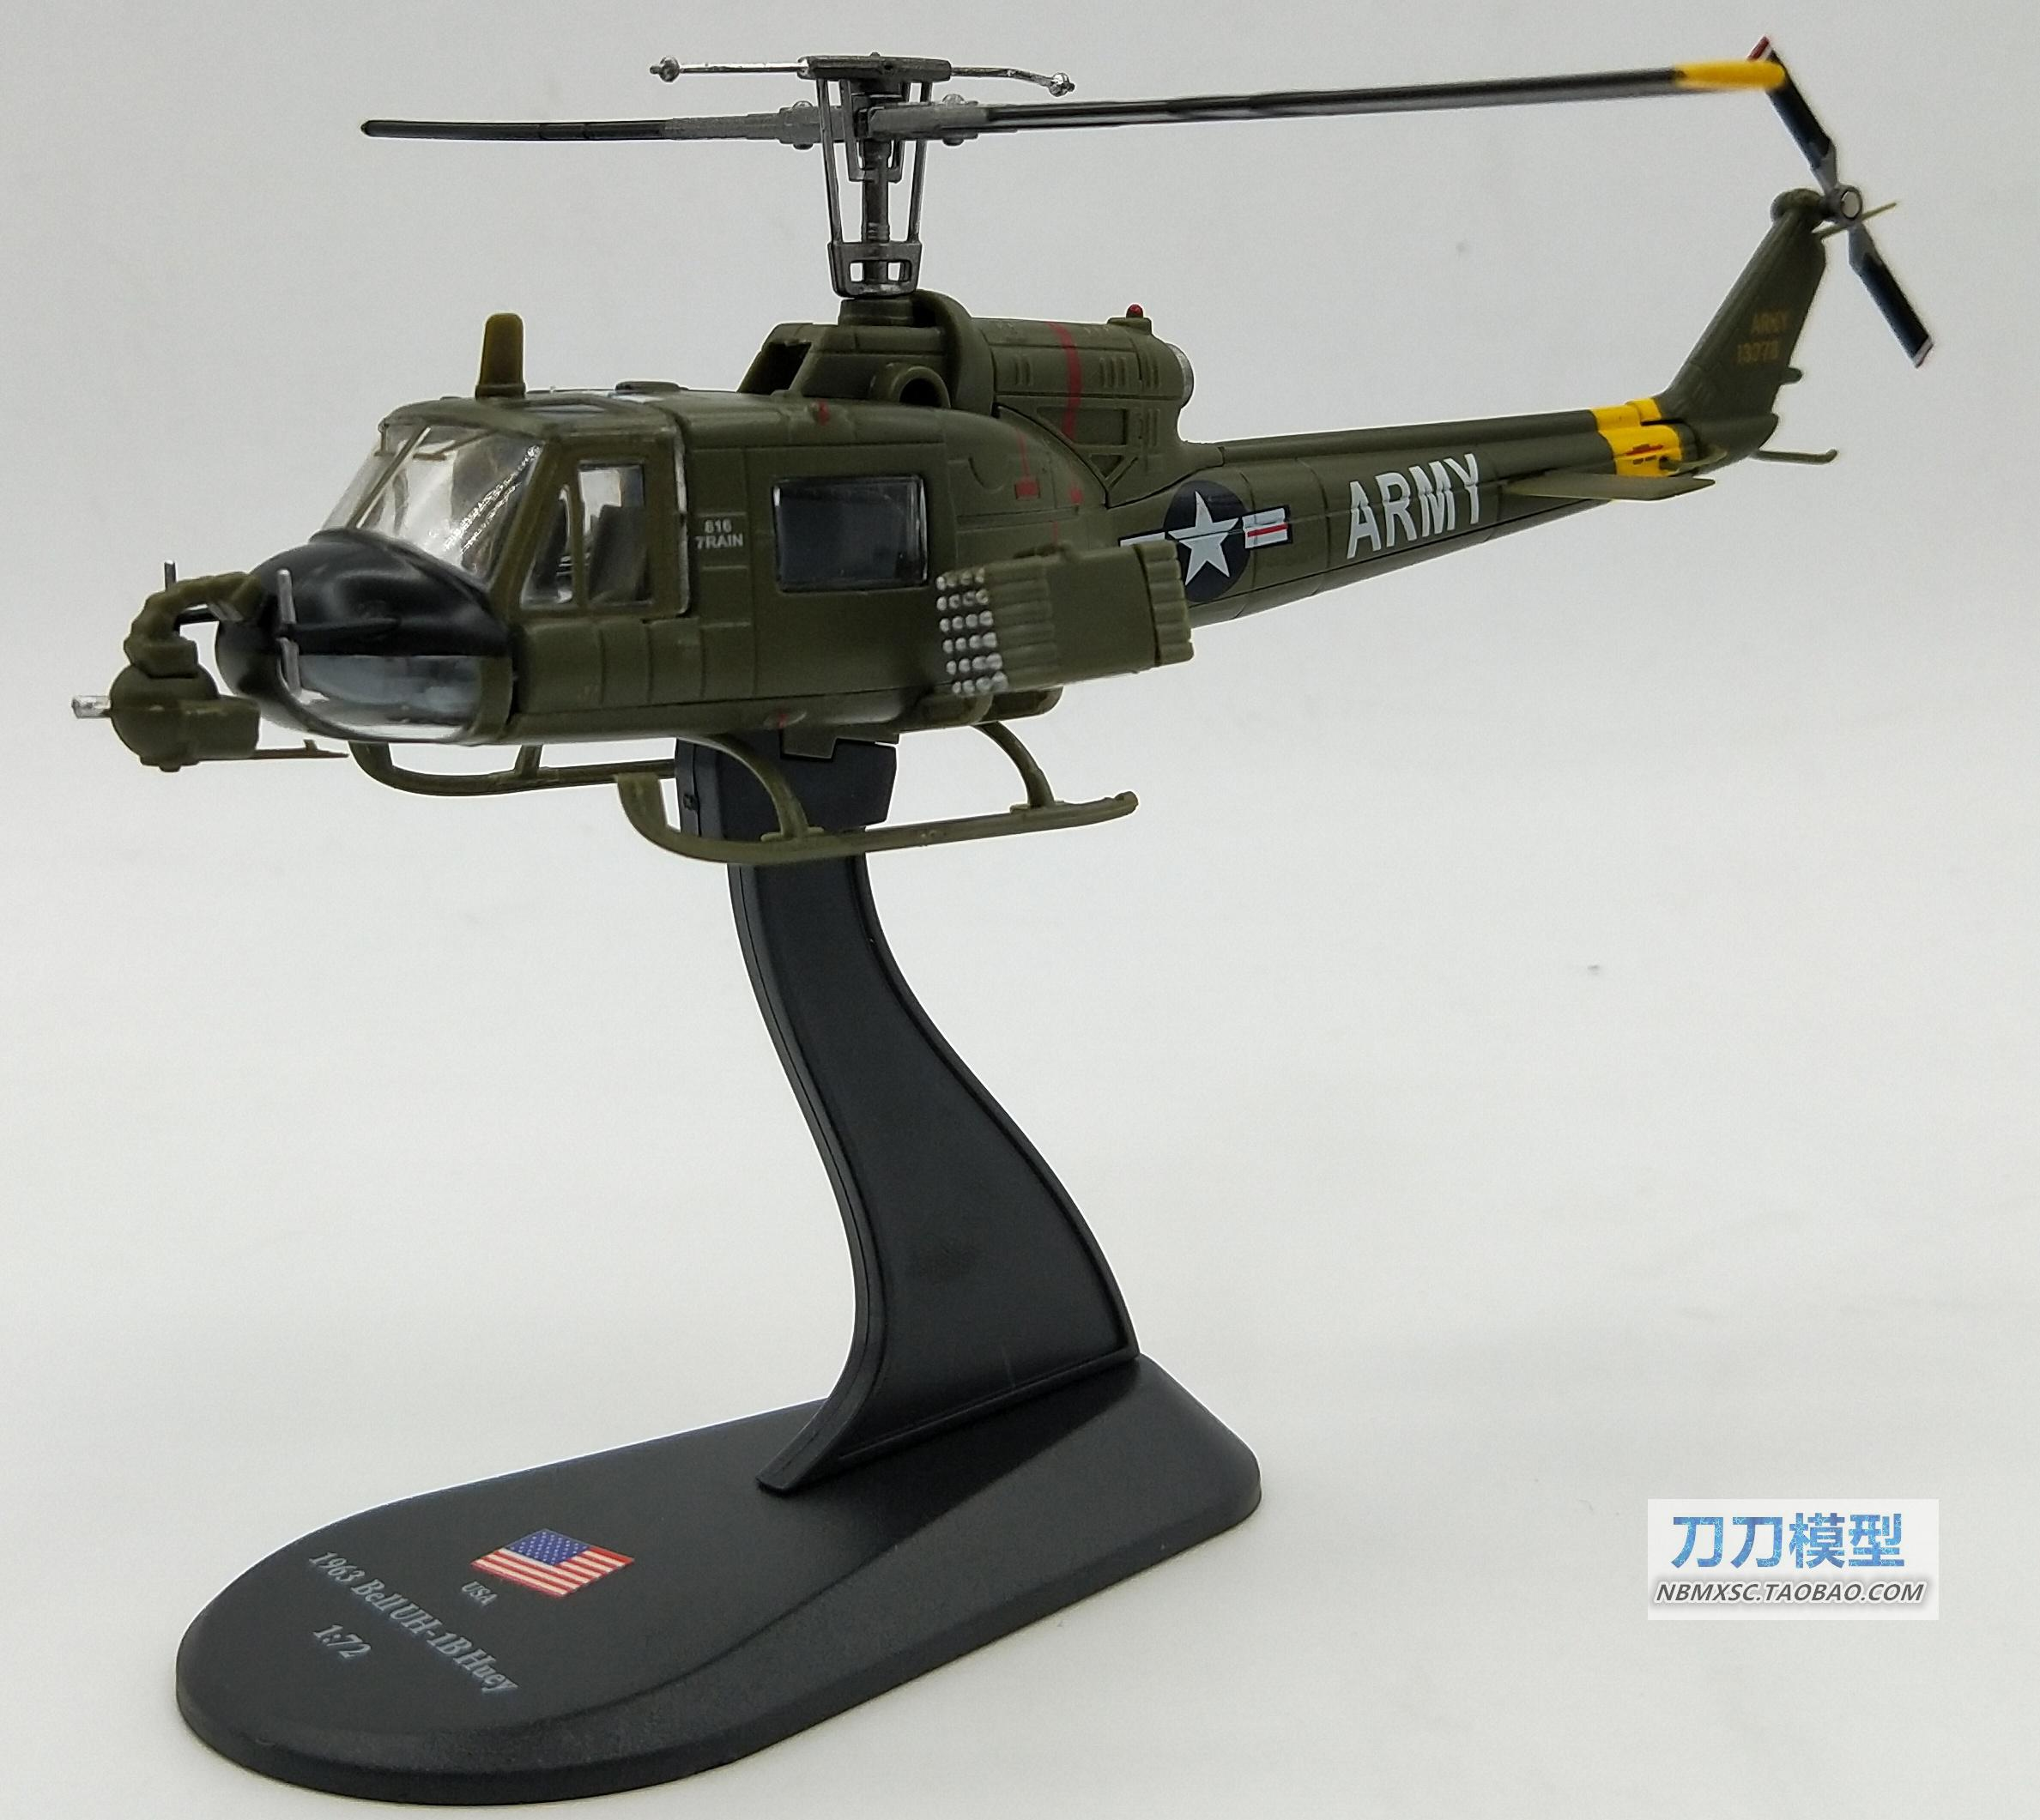 AMER 1/72 Scale Military Model Toys USA 1963 Bell UH-1B Huey Helicopter Diecast Metal Plane Model Toy For Gift/Collection